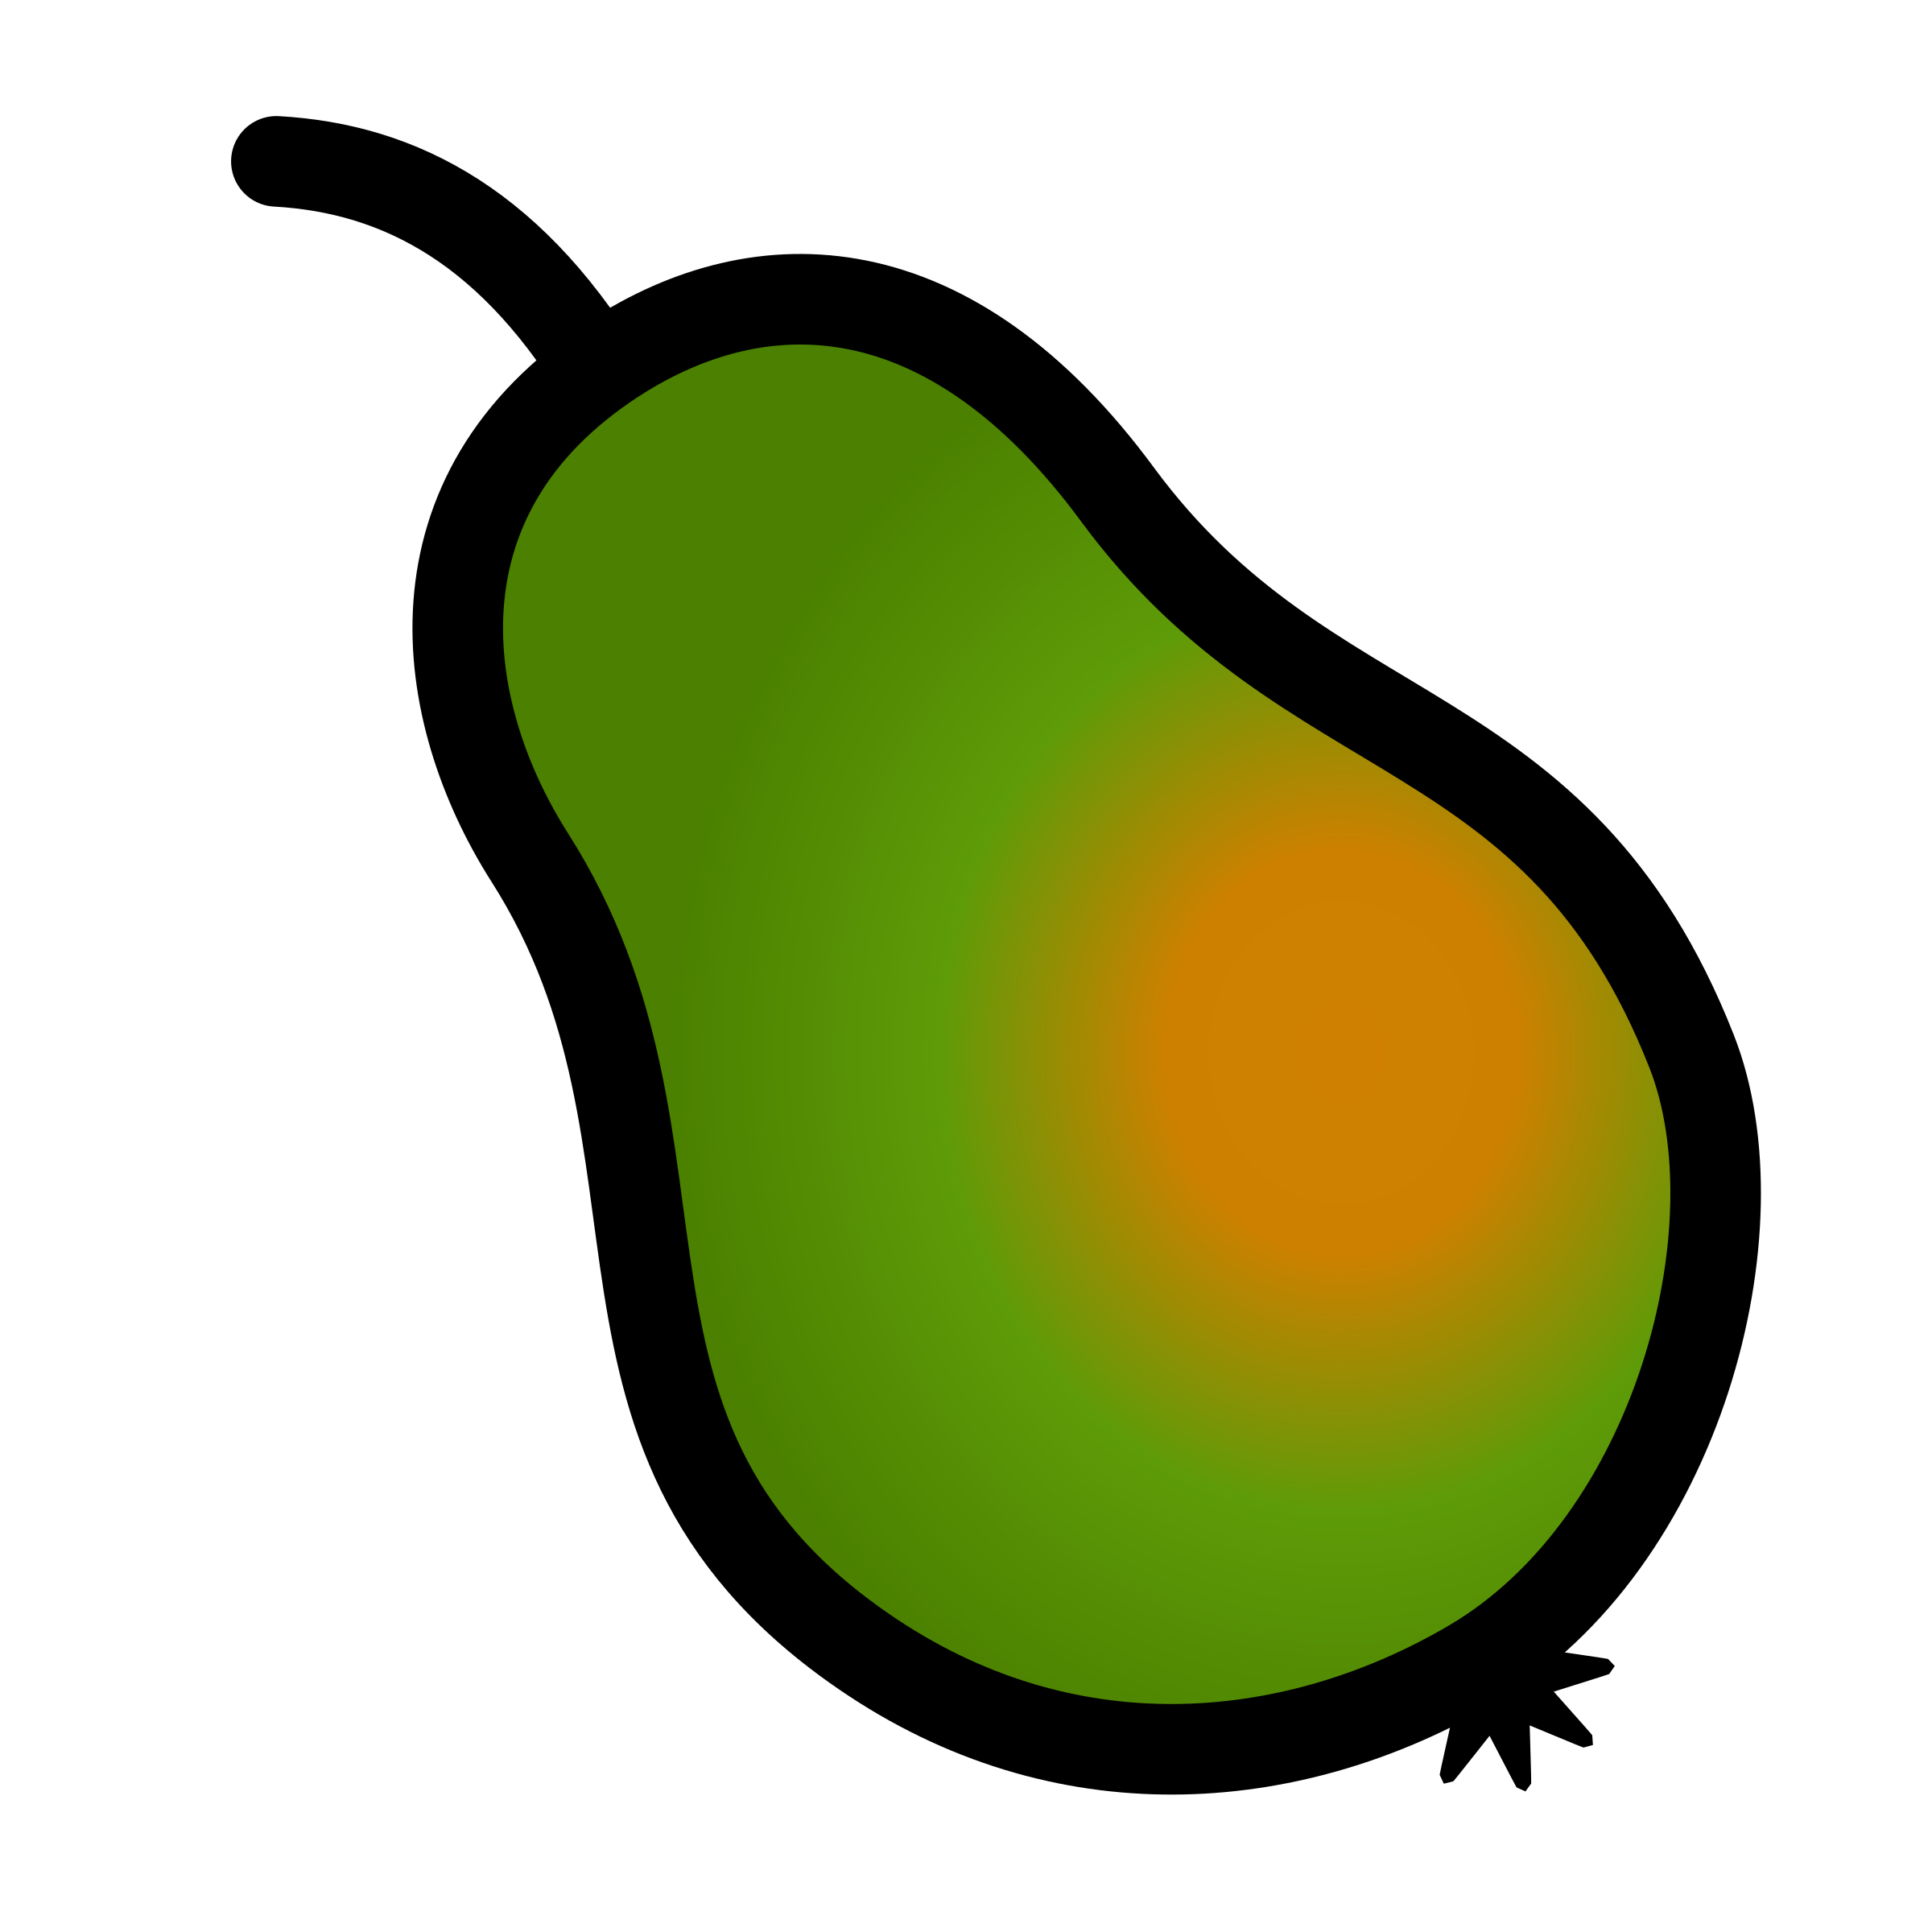 Pear icon 2 by pitr